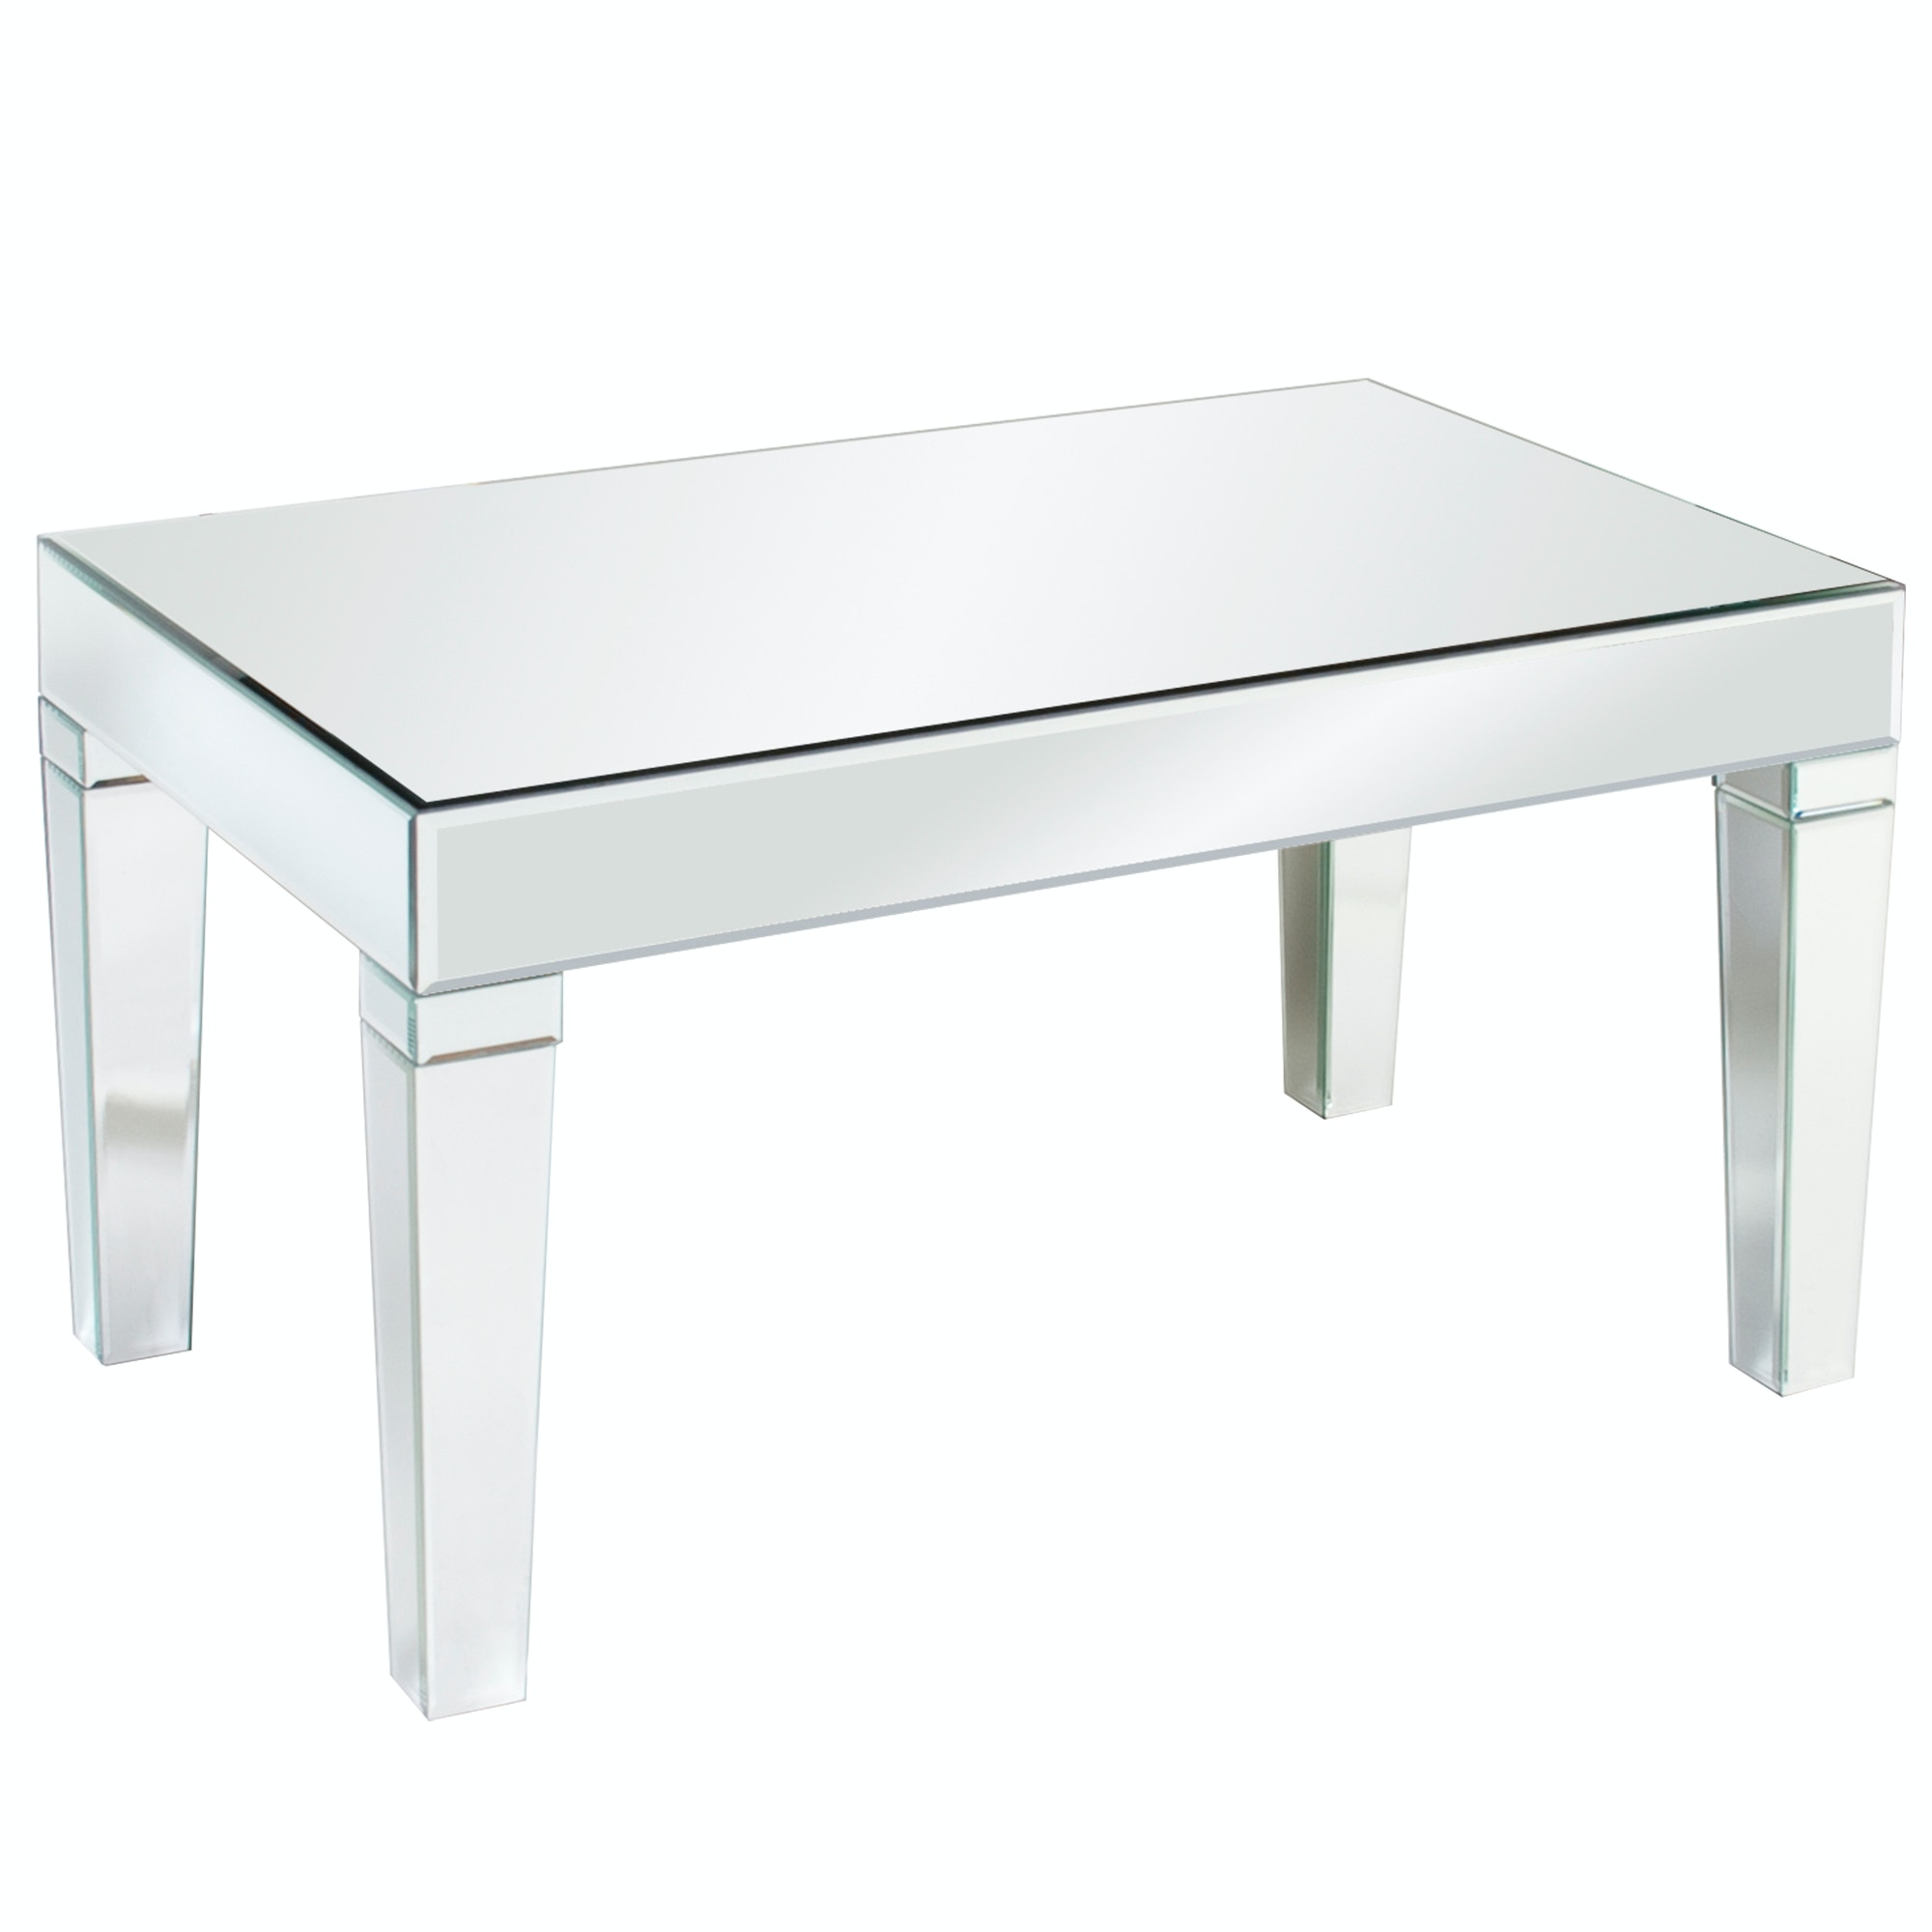 Howard Elliott Leo Mirrored Coffee Table 11095